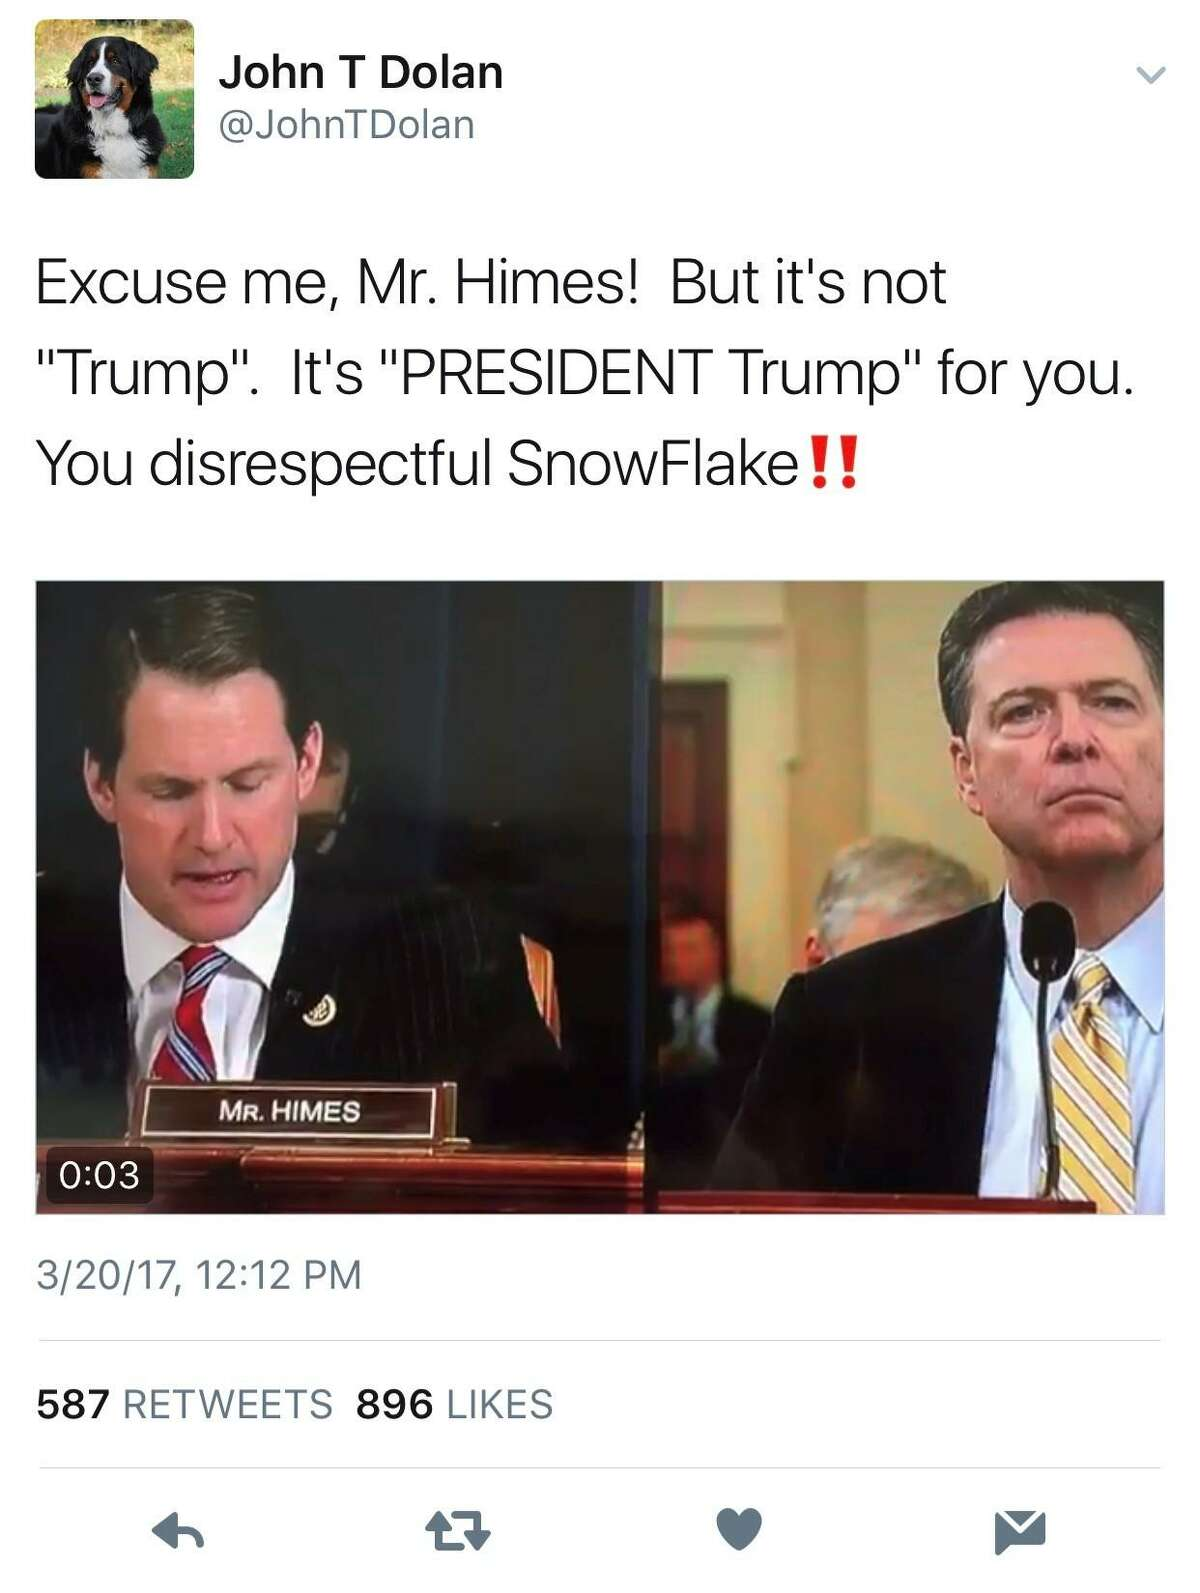 In this March 20, 2017, post, Twitter user @JohnTDolan referred to U.S. Rep. Jim Himes, D-Conn., as a